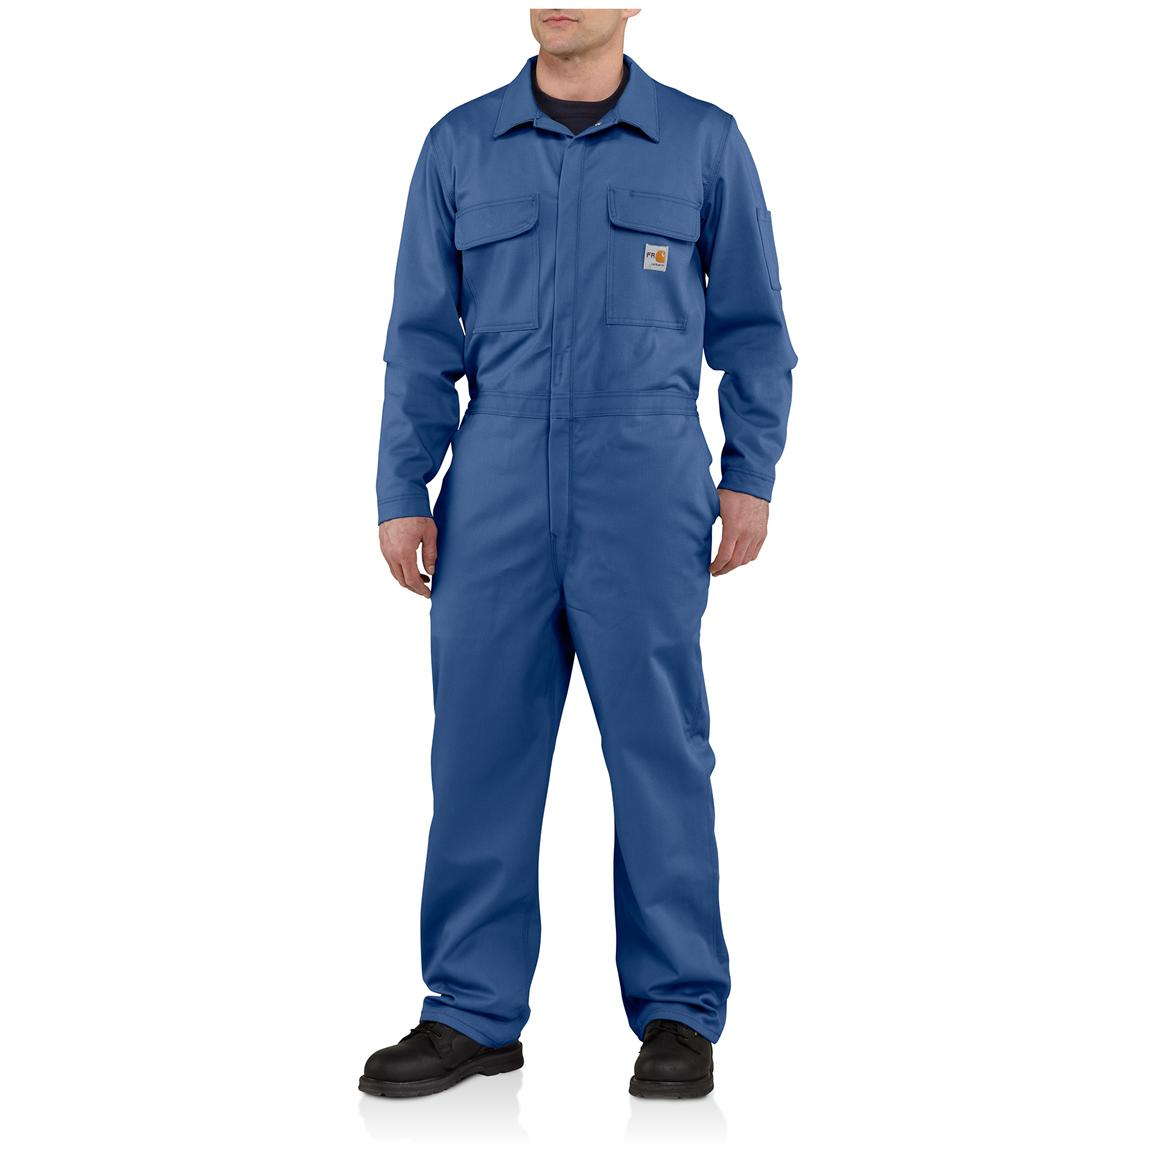 Carhartt® Flame-resistant Classic Twill Coveralls, Royal